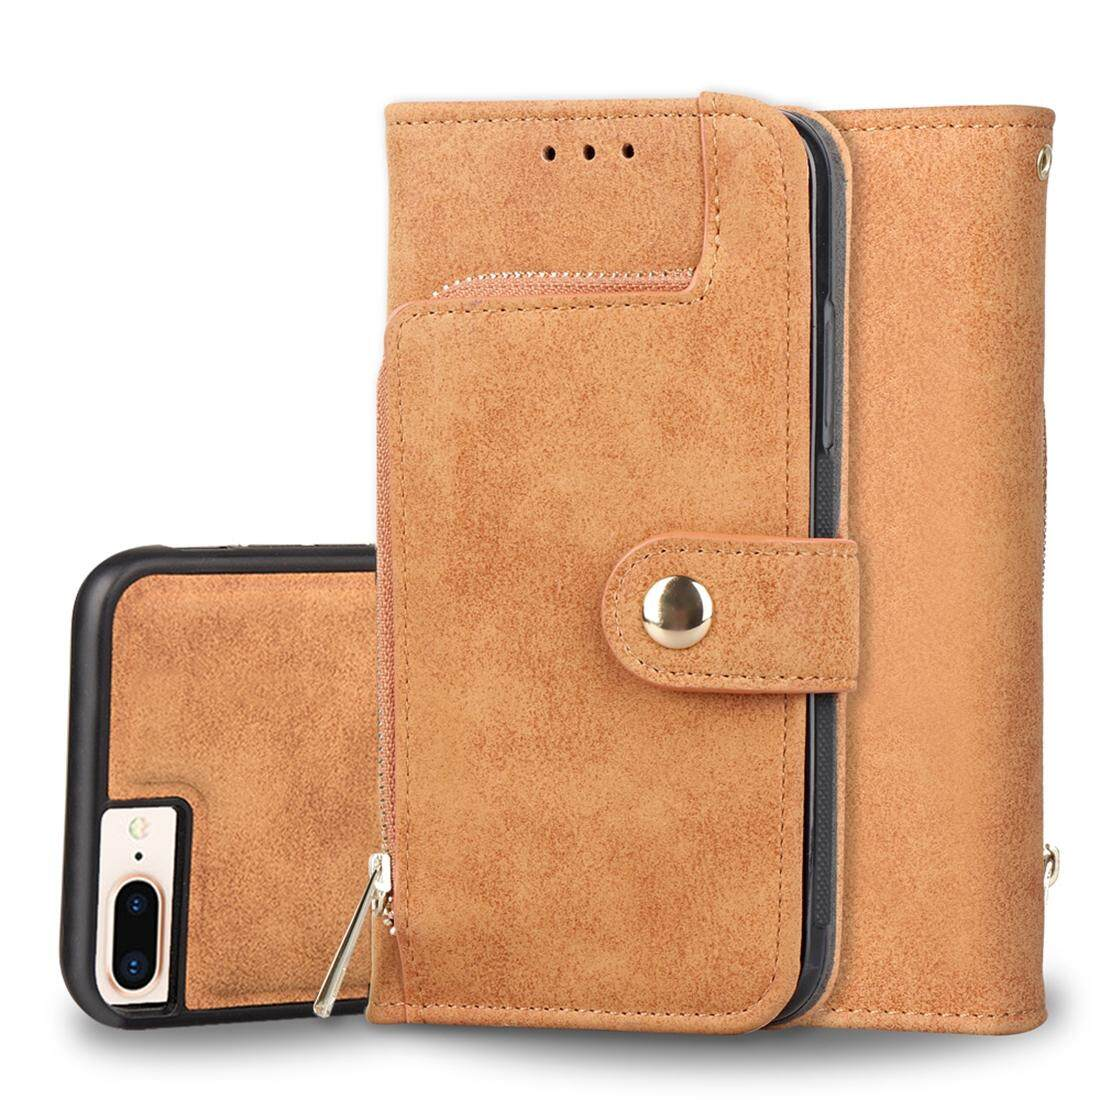 Sale For Iphone 8 Plus And 7 Plus And 6 Plus And 6S Plus Zipper Earphones Storage Magnetic Frosted Leather Case With Holder And Card Slots And Wallet Brown Intl Online China